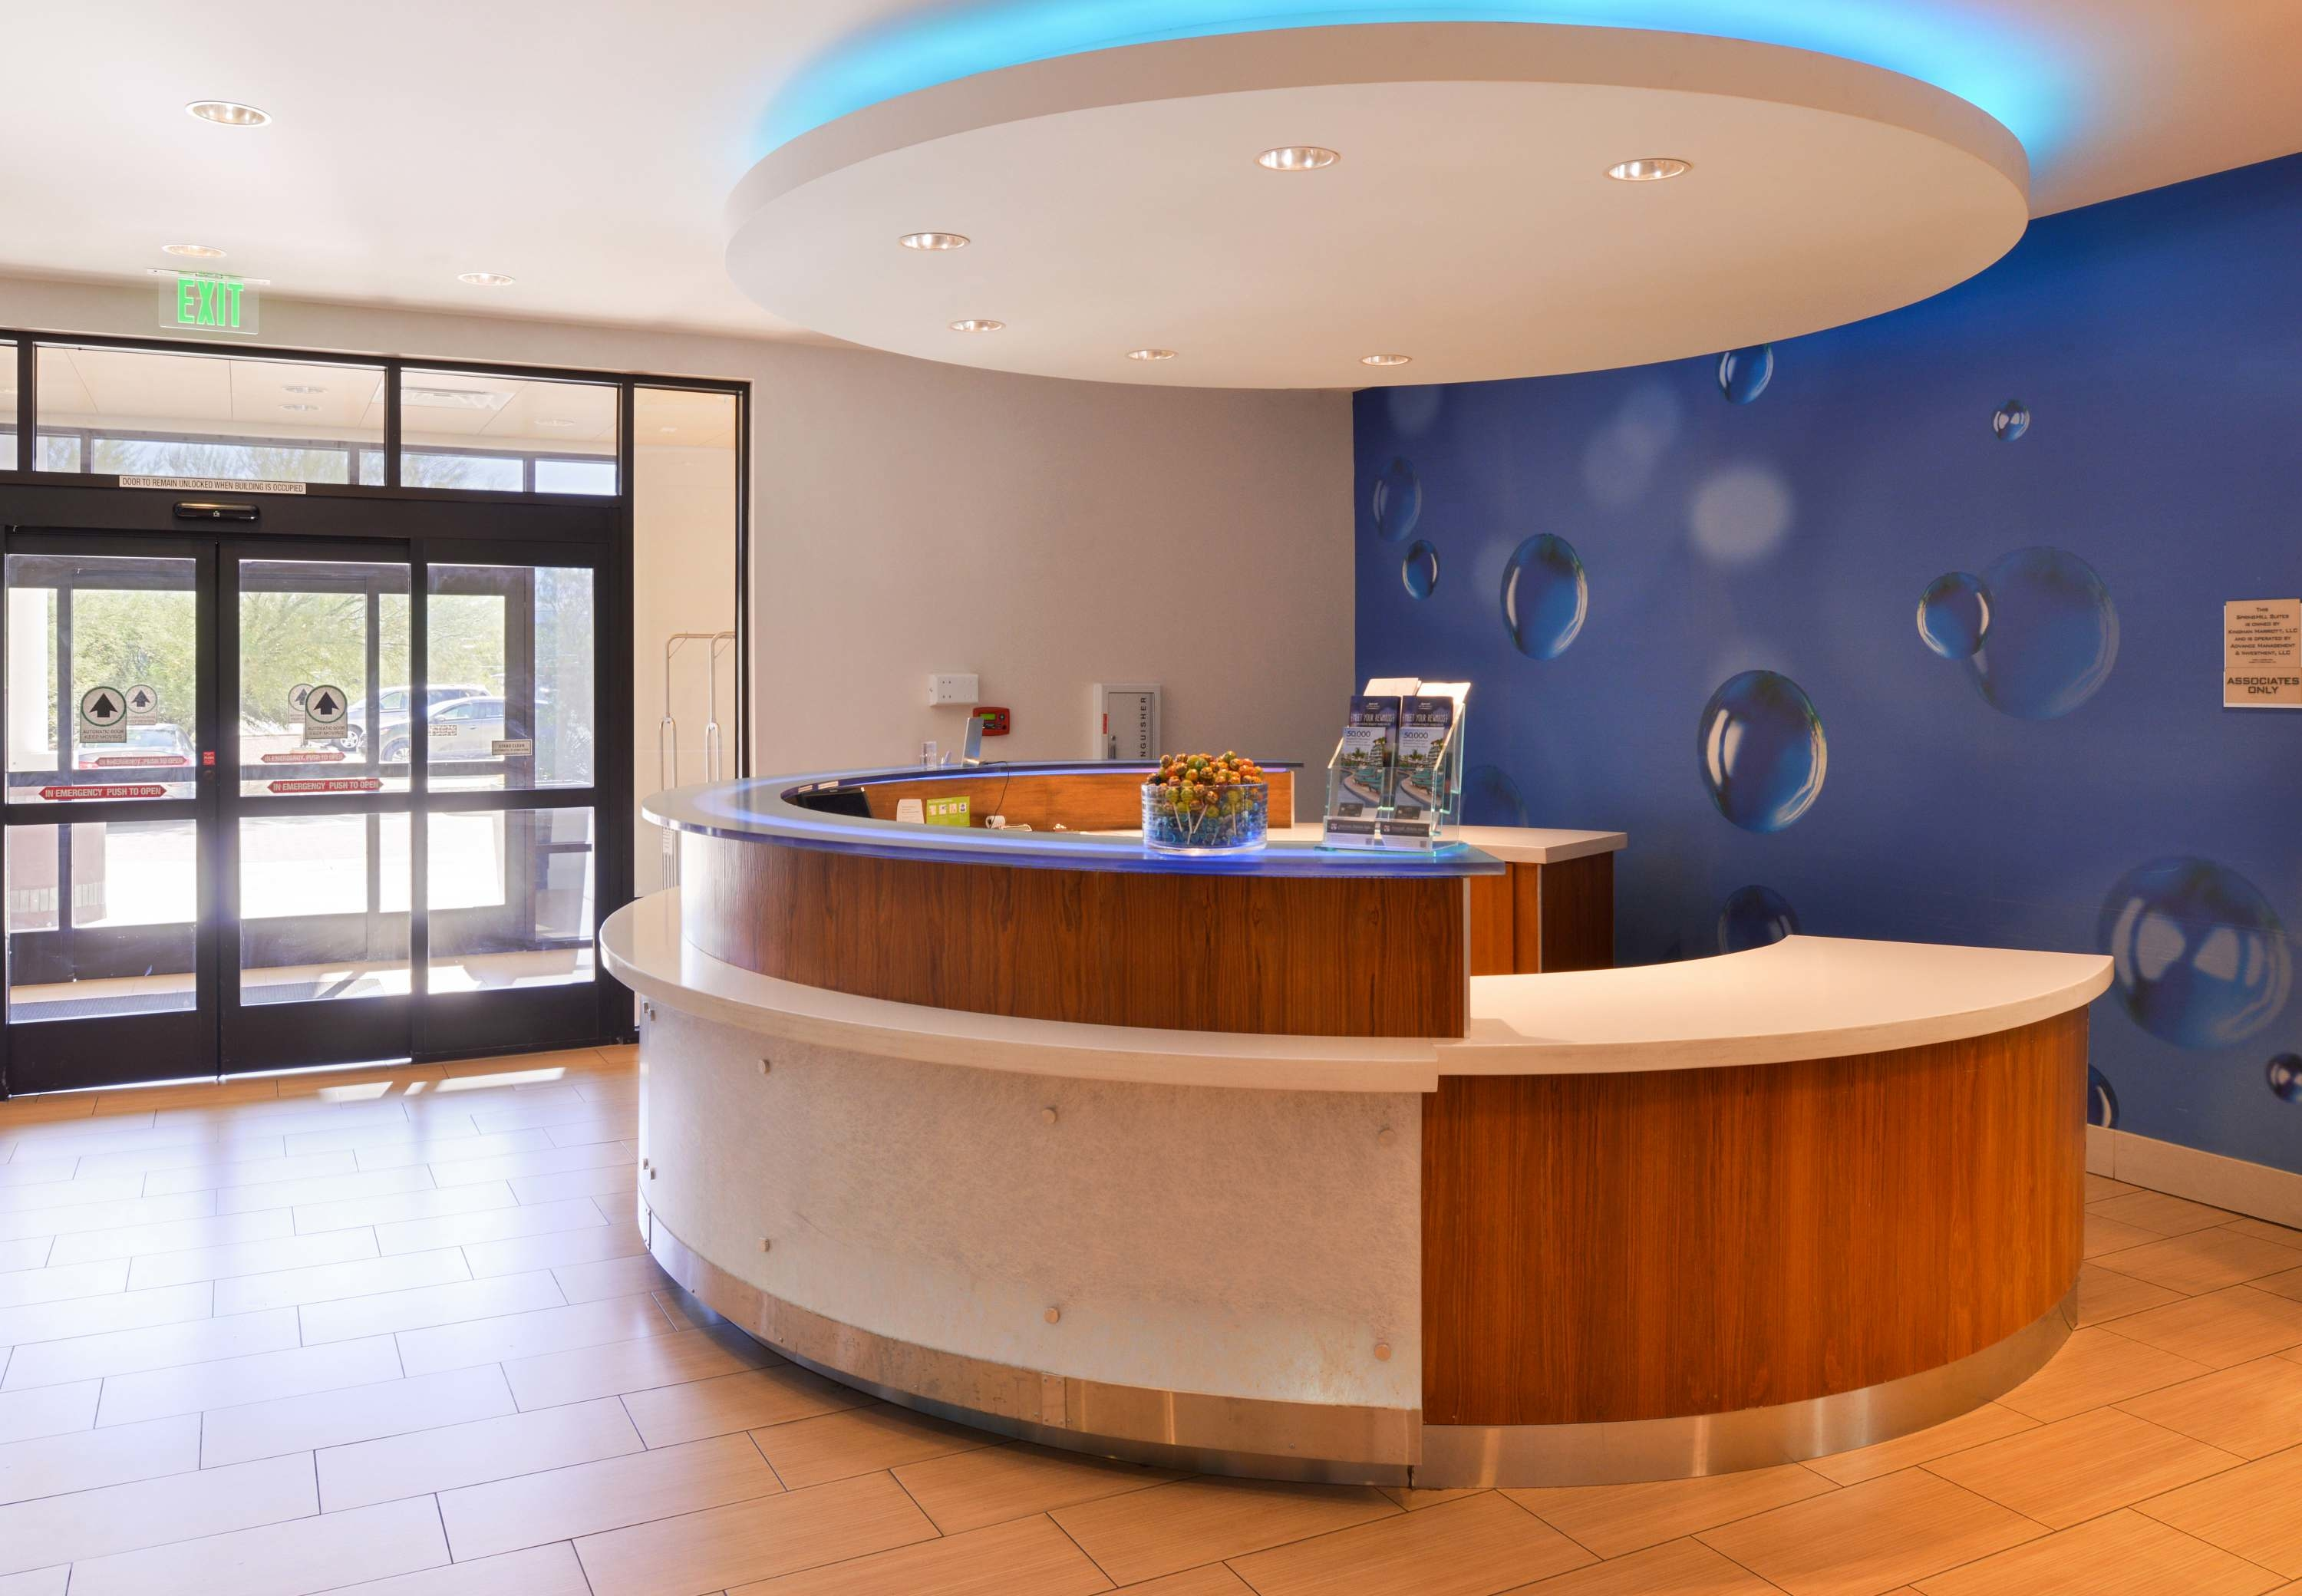 SpringHill Suites by Marriott Kingman Route 66 image 7